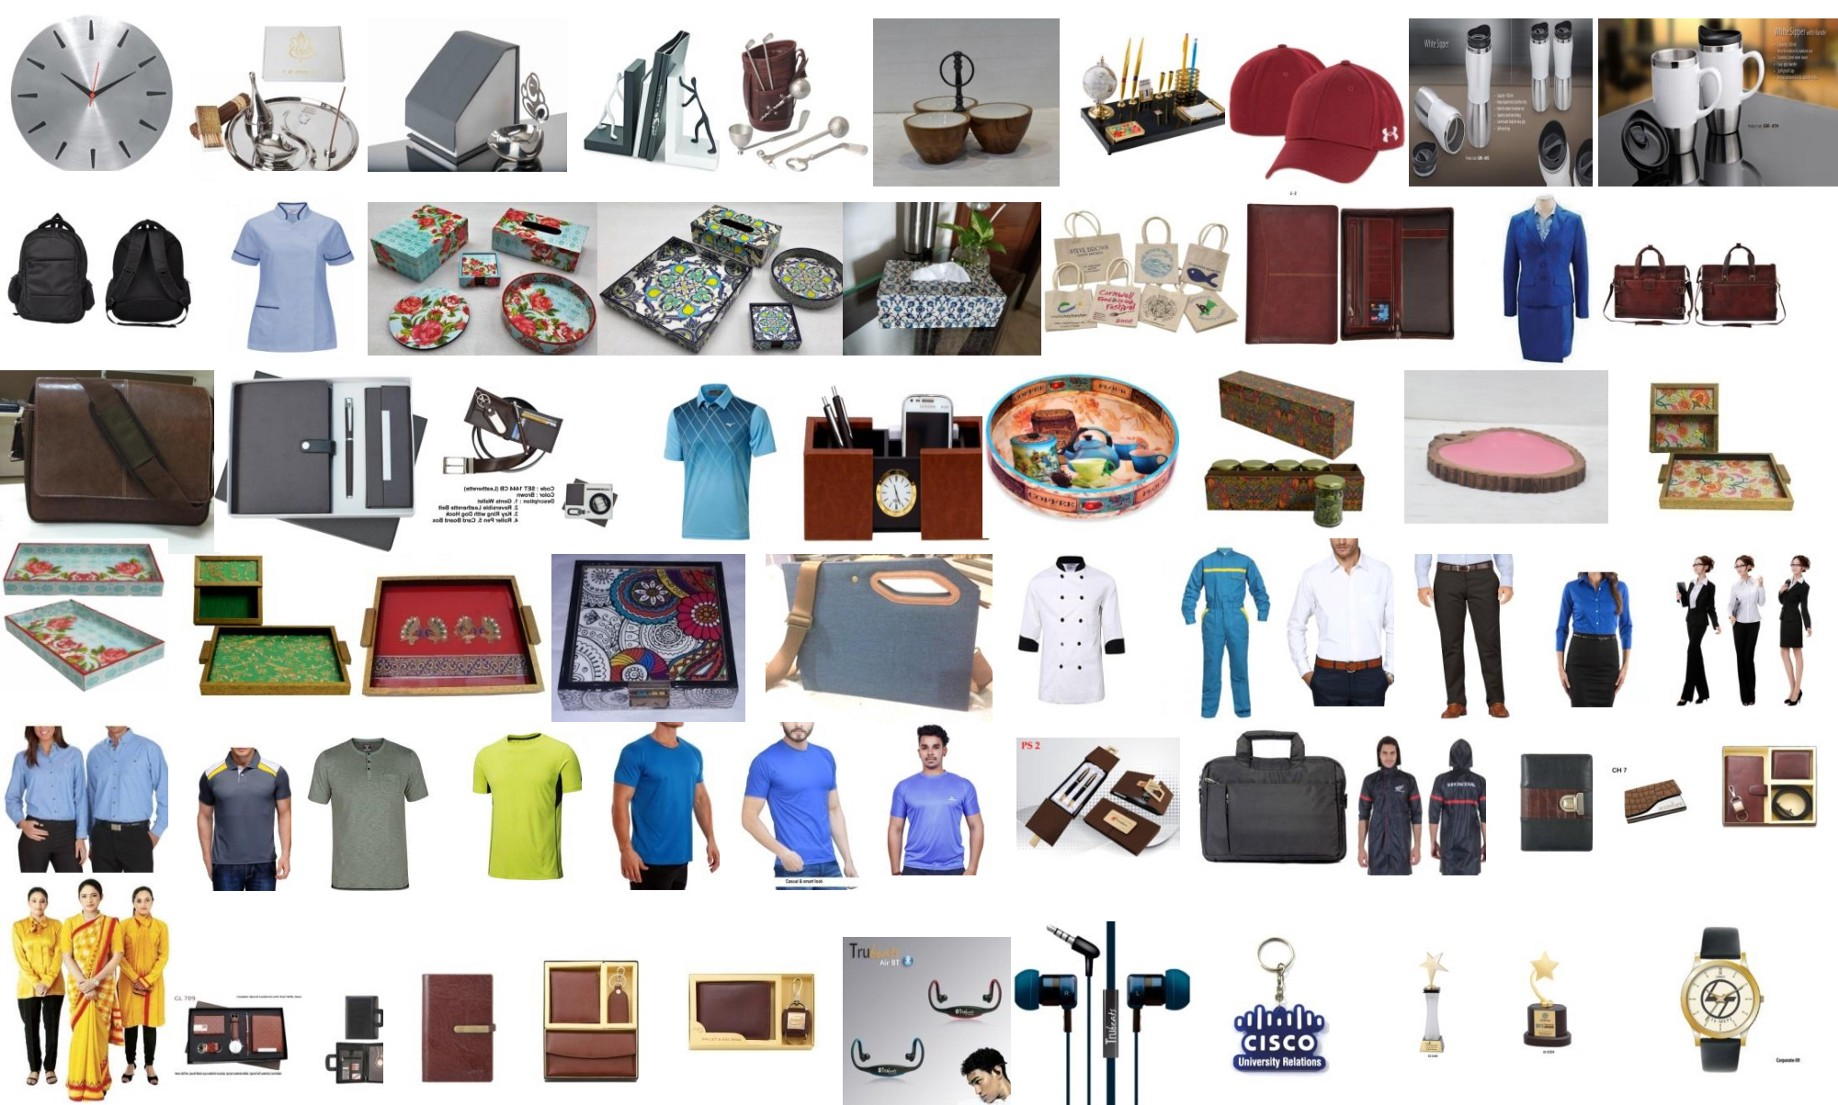 For corporate gifting, Corporate Innovations it is vital to buy